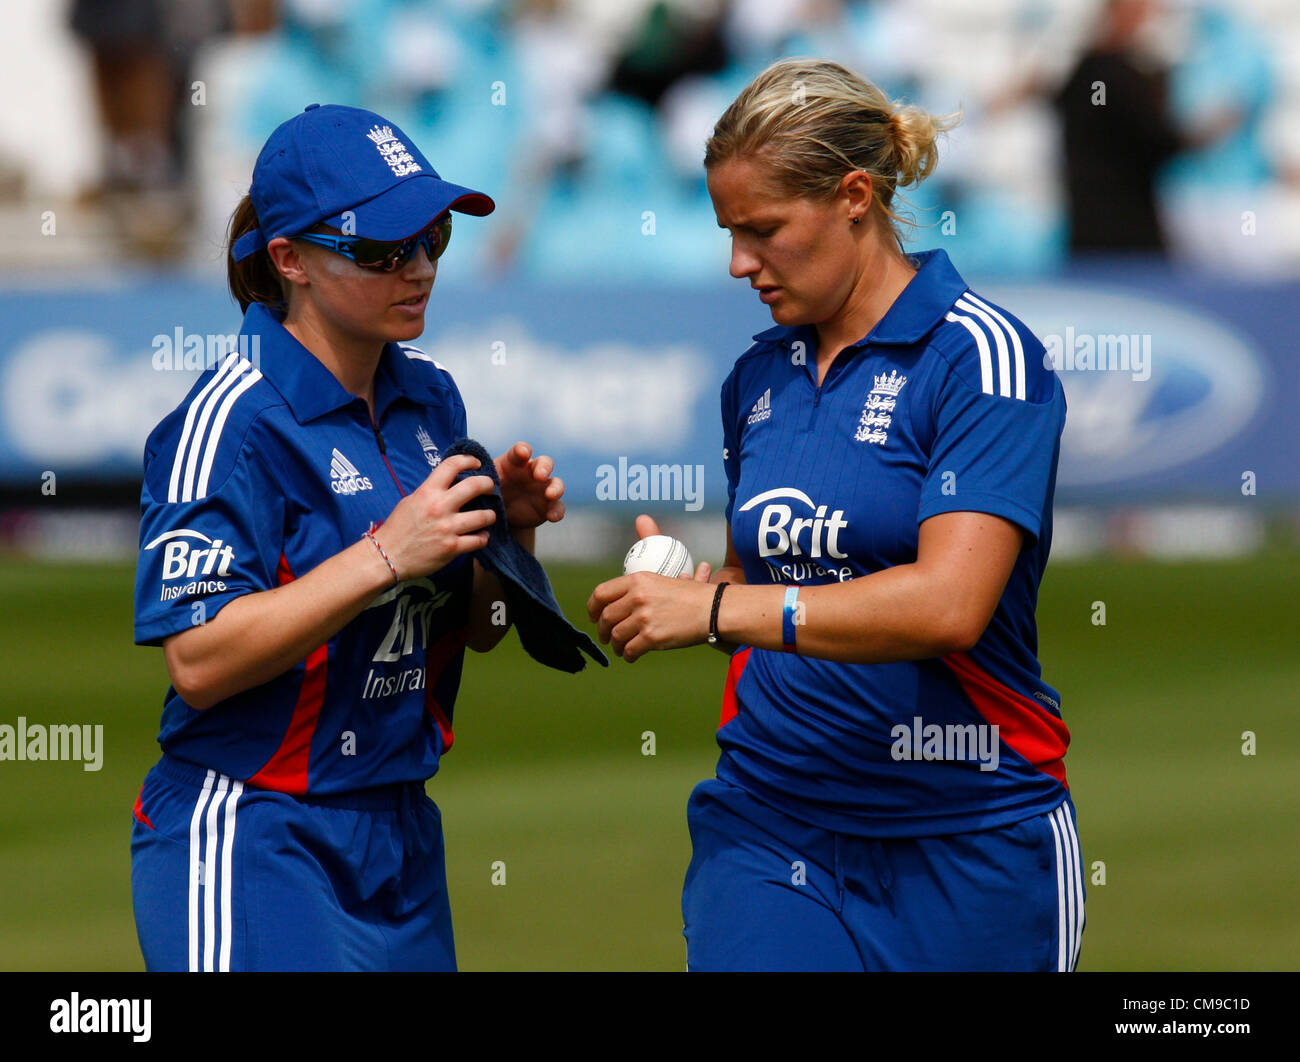 28.06.12 Chelmsford, ENGLAND:  Holly Colvin of England and Katherine Brunt of England during NatWest Women's - Stock Image